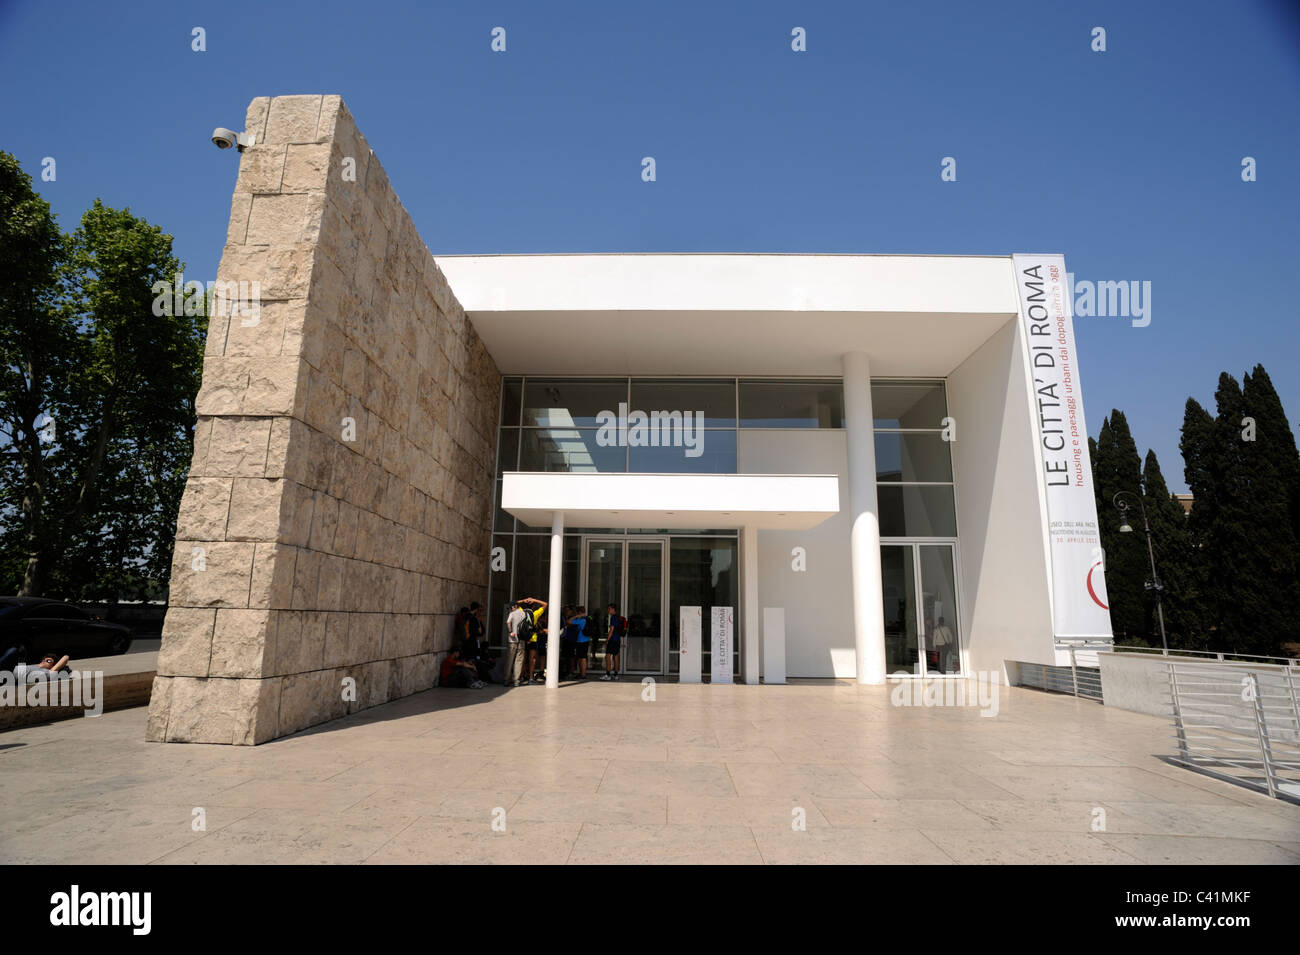 Italy Rome Ara Pacis New Building Architect Richard Meier Stock Photo Alamy